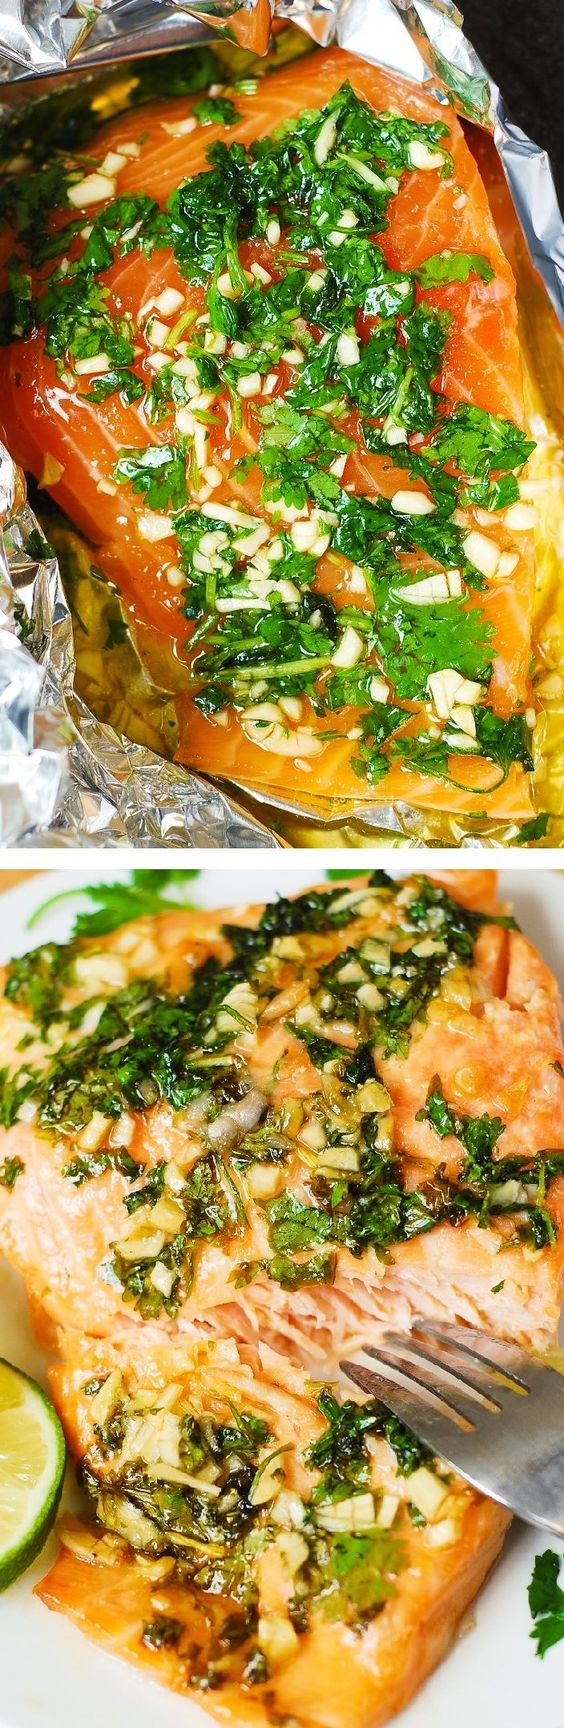 Cilantro-Lime Honey Garlic Salmon (baked in foil) - Easy, healthy recipe that takes 30 minutes from start to finish.